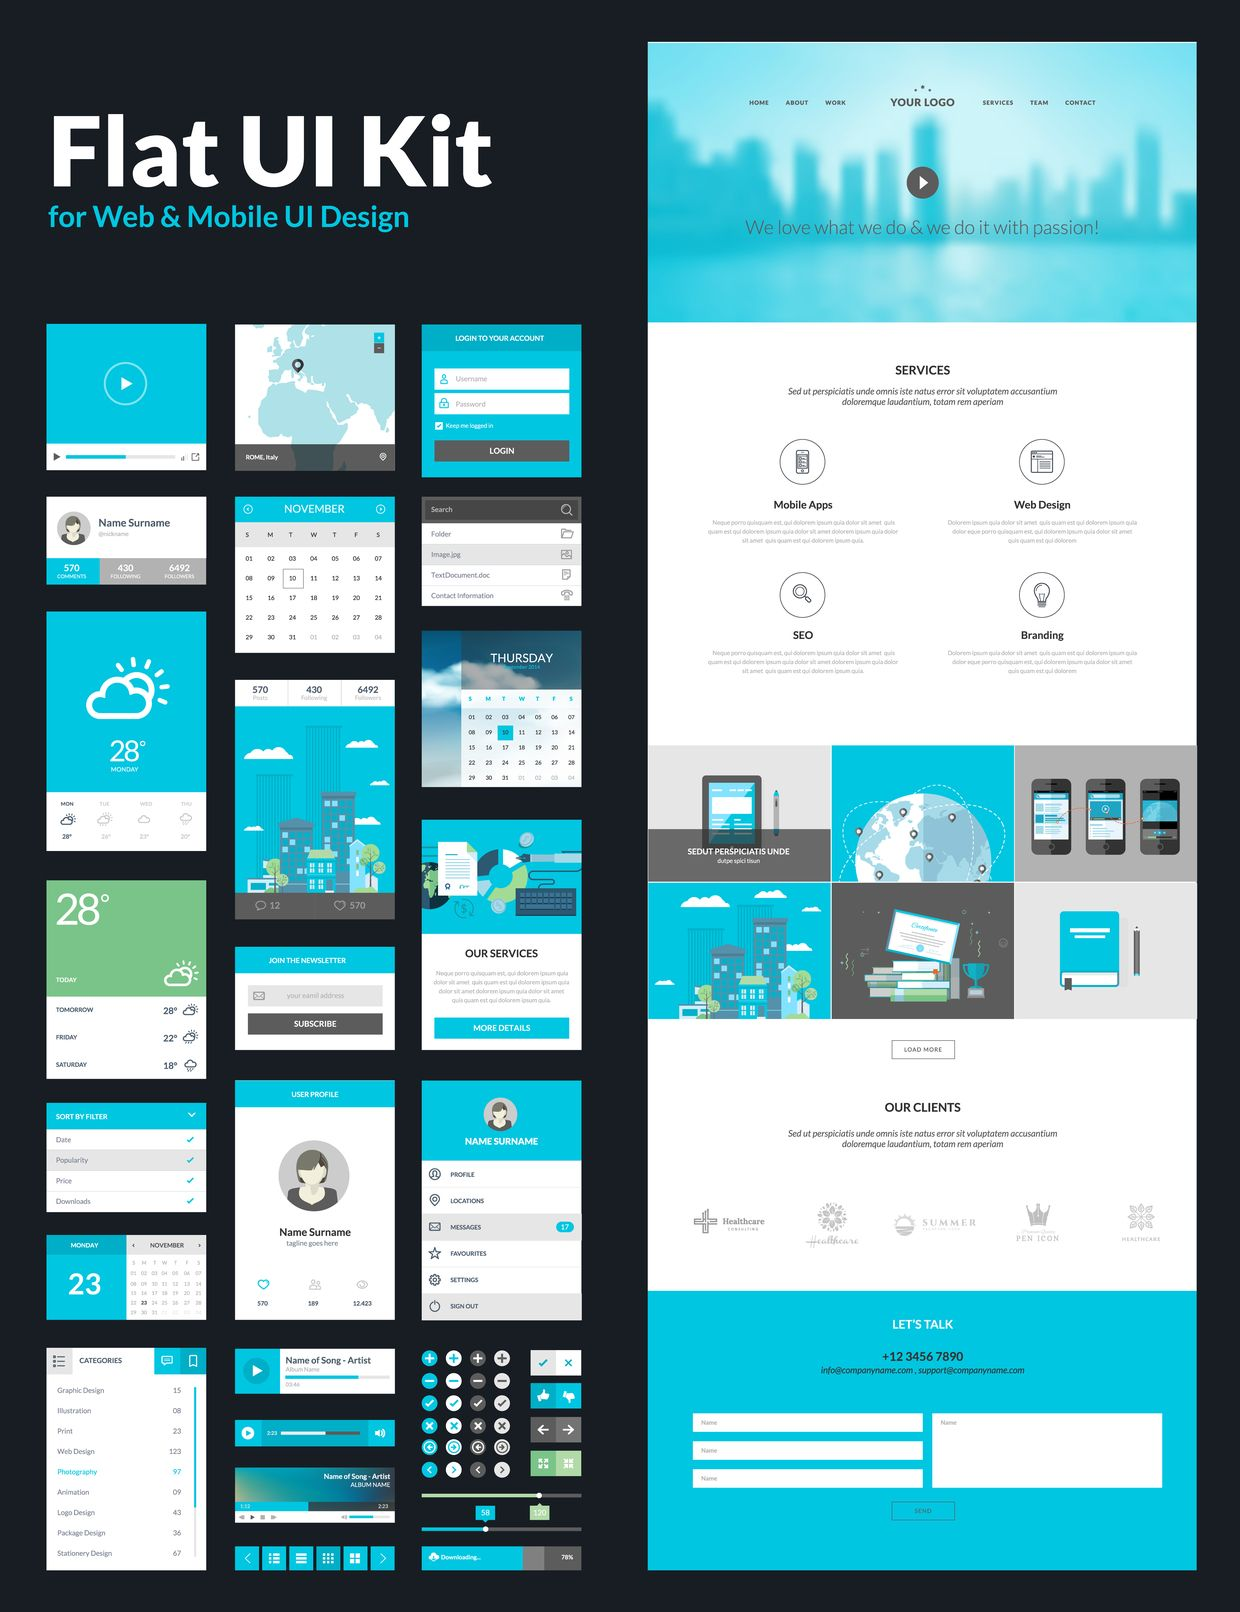 All In One Set For Website Design That Includes One Page Website